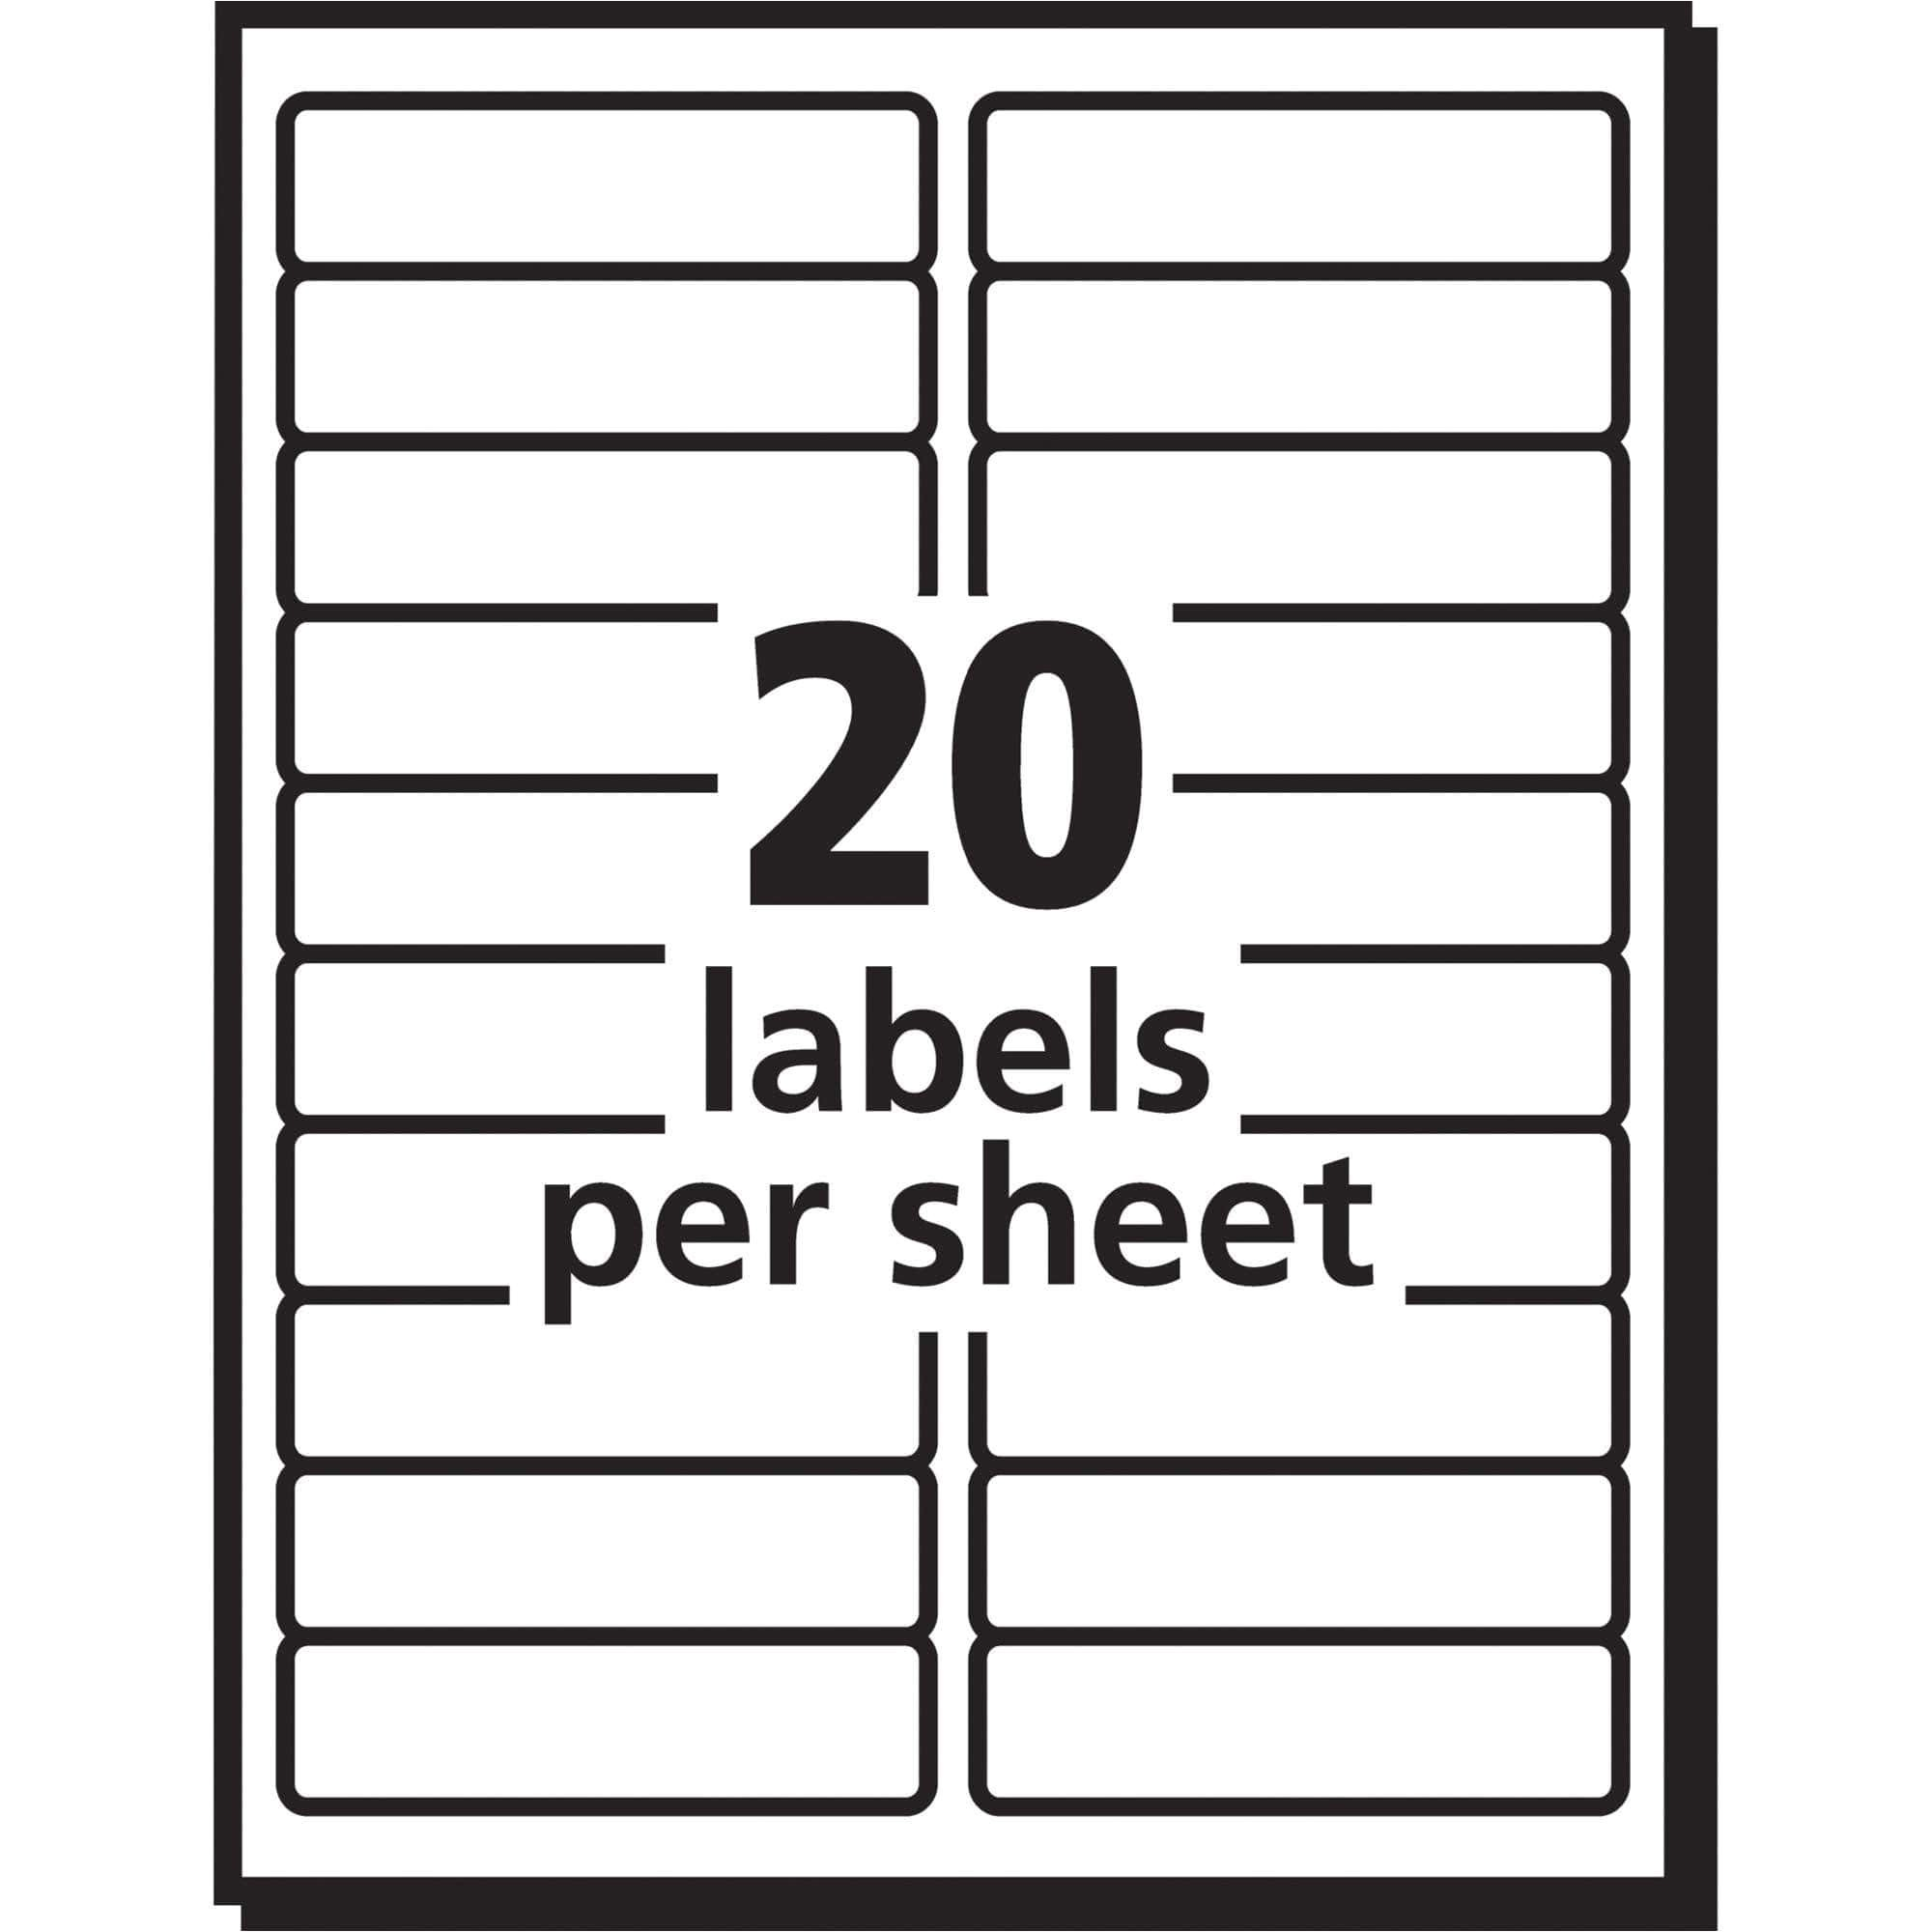 Avery Template Labels 5160 Labels by the Sheet Templates and Avery Address Labels